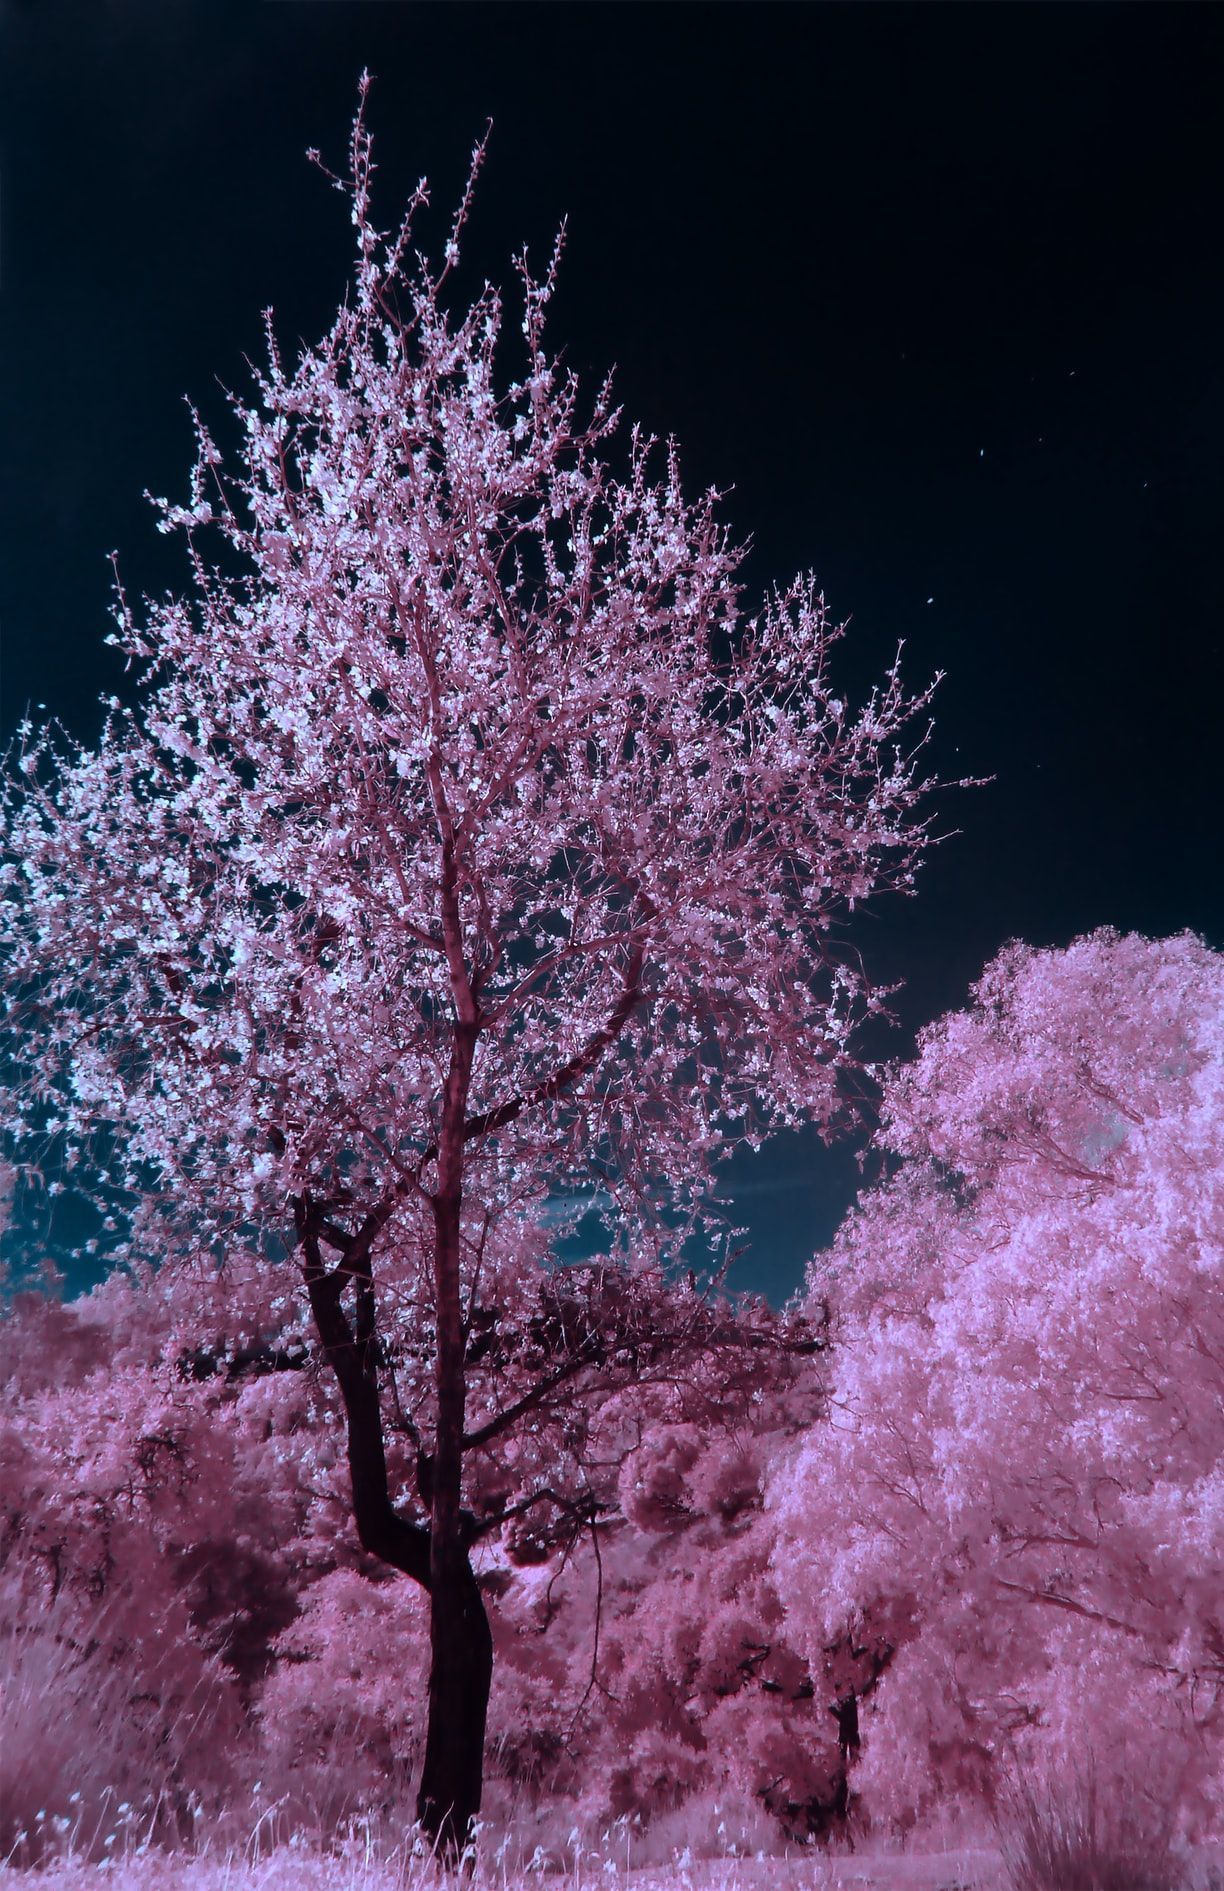 Pink And Brown Cherry Blossom Tree During Nighttime Photo Free Flower Image On Unsplash Cherry Blossom Tree Blossom Trees Cherry Blossom